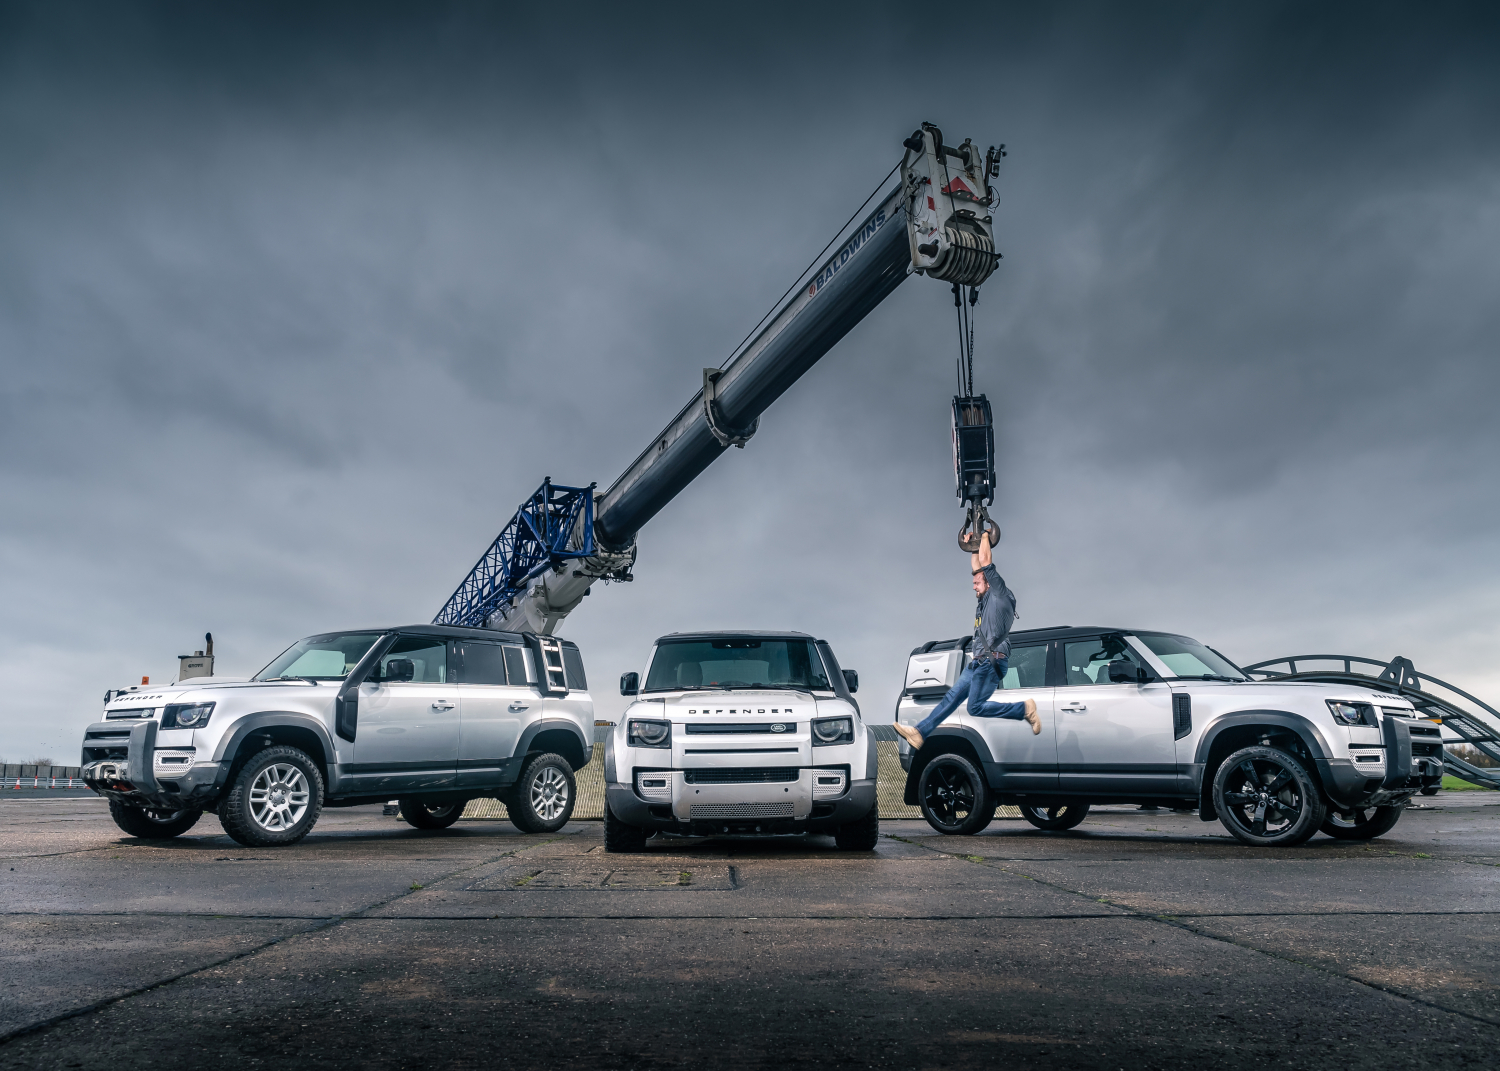 Land Rover Defender is Top Gear's Car of the Year - Image 2